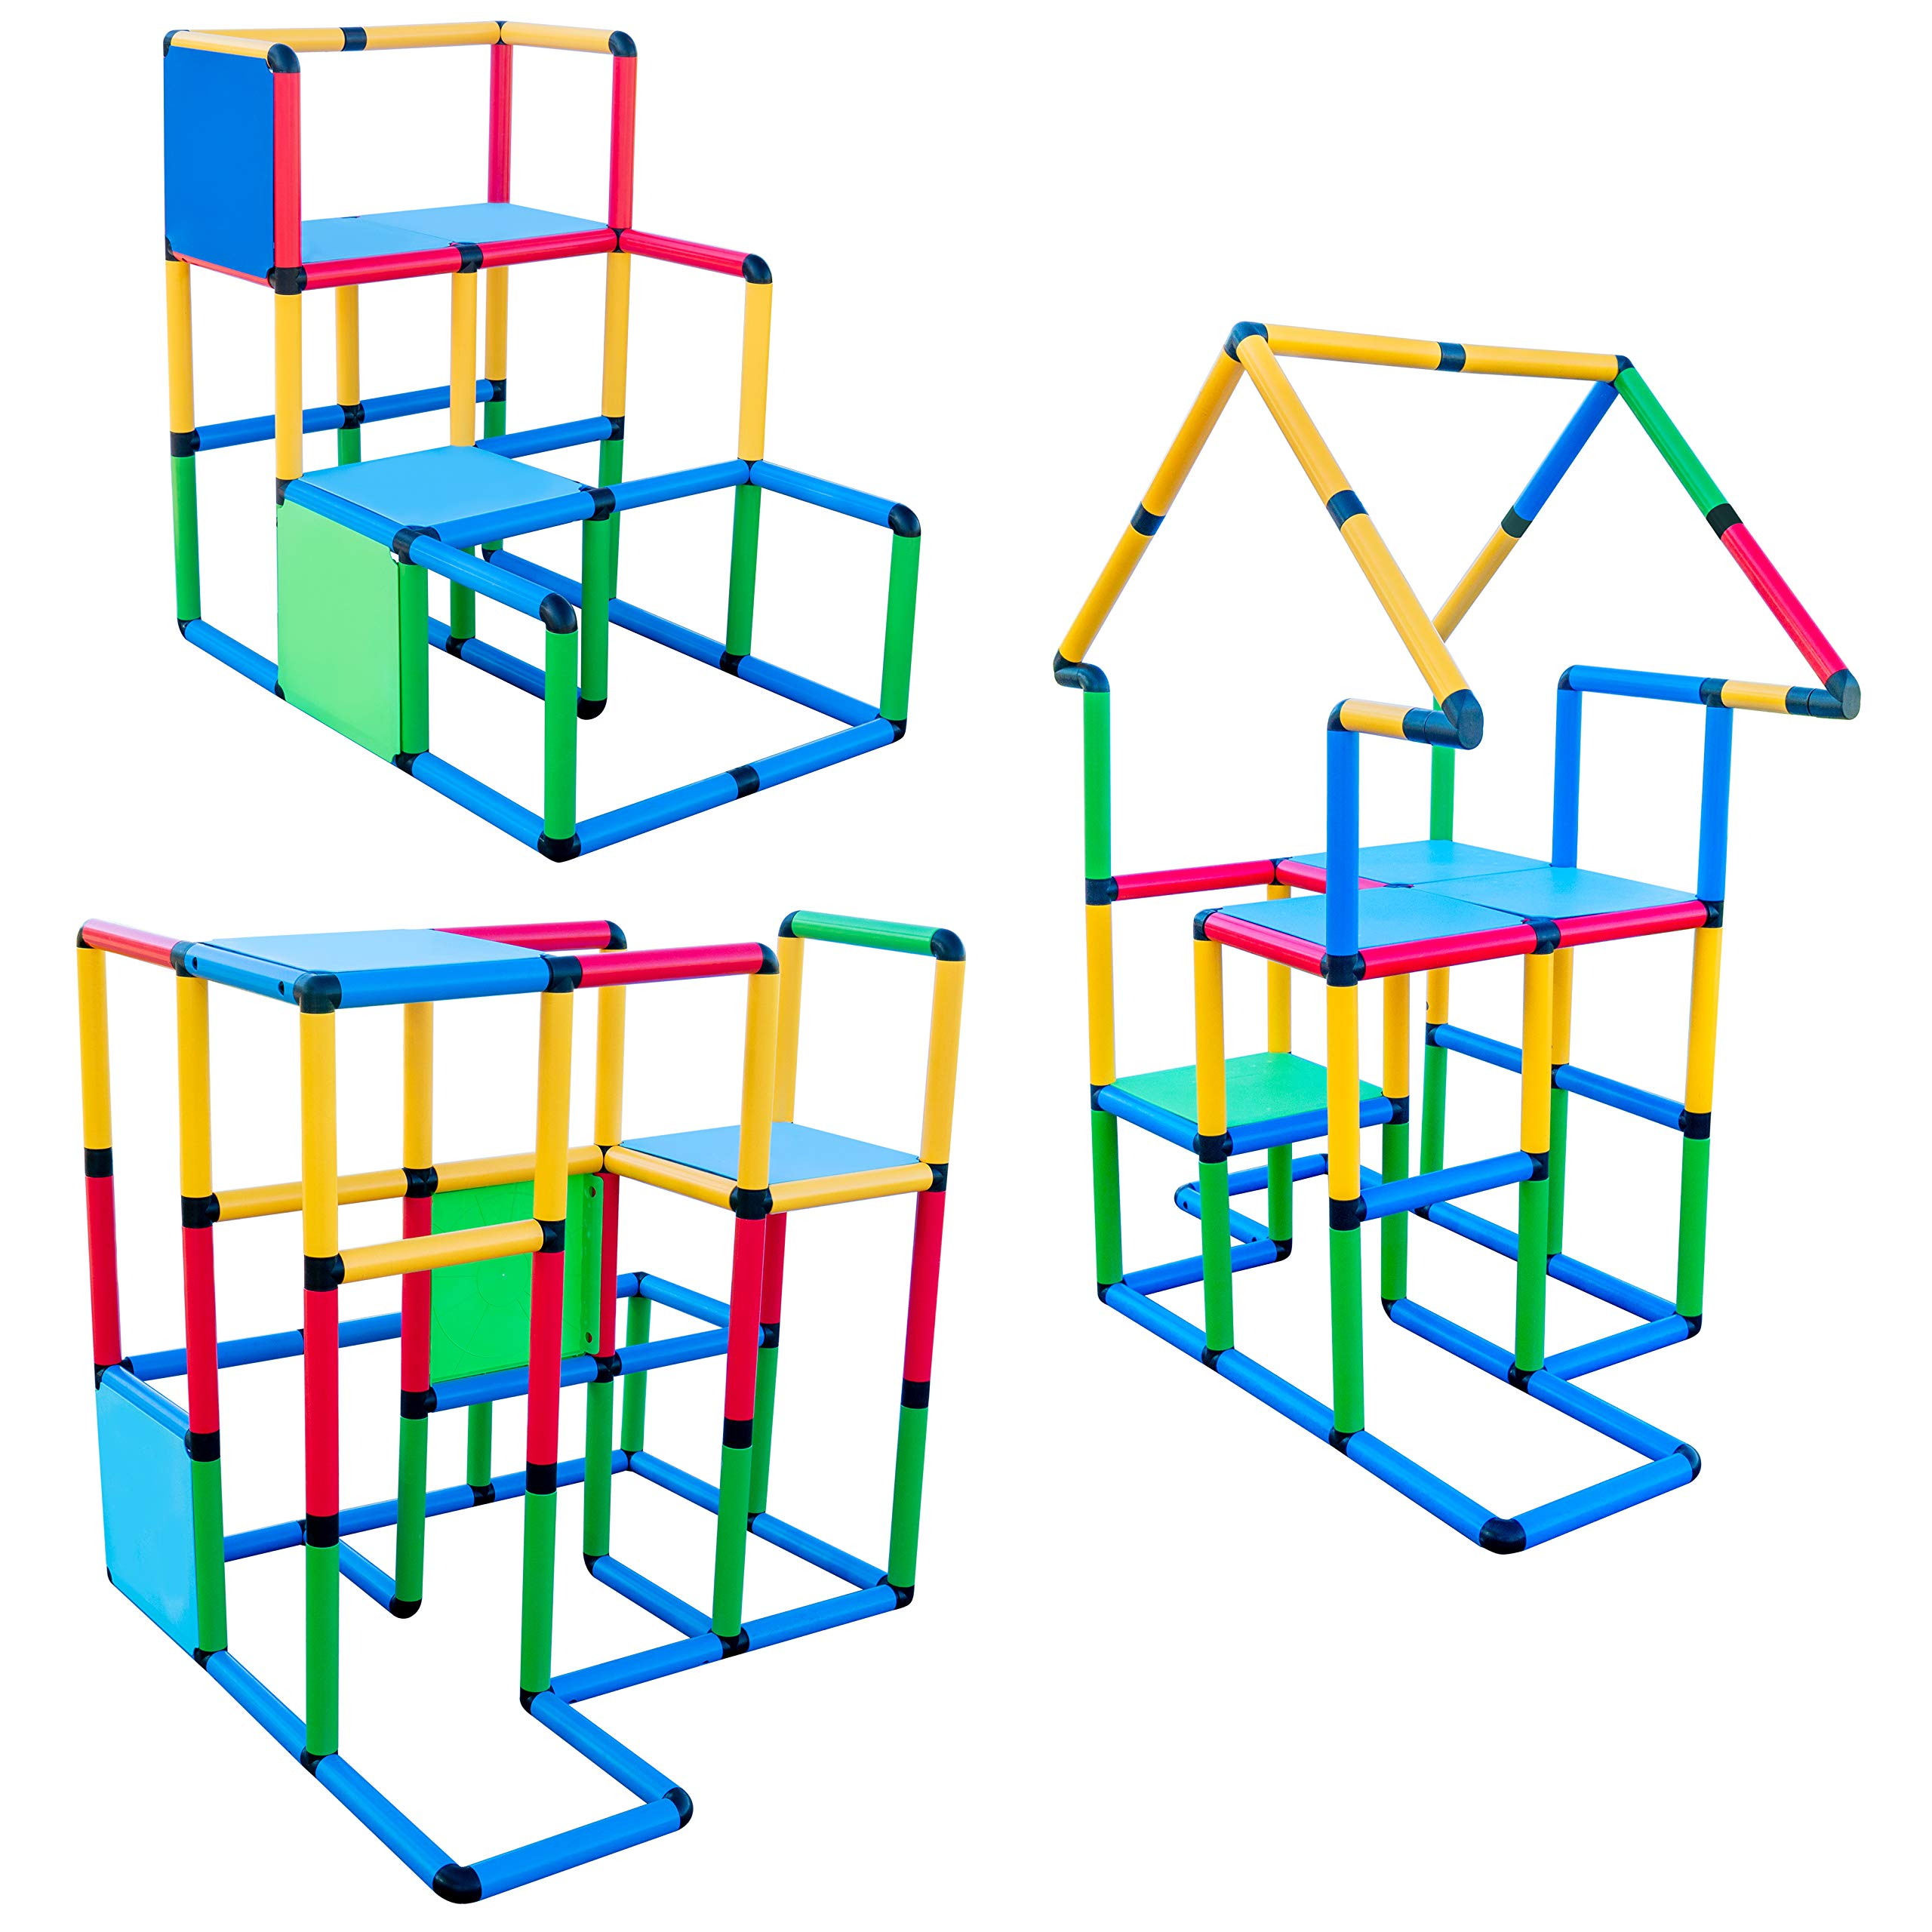 Funphix Deluxe 296 Piece Construction Toy Set - Building Play-Structures for Indoors & Outdoors - Fun & Educational Learning Toys for Ages 2 to 12 by Funphix (Image #7)